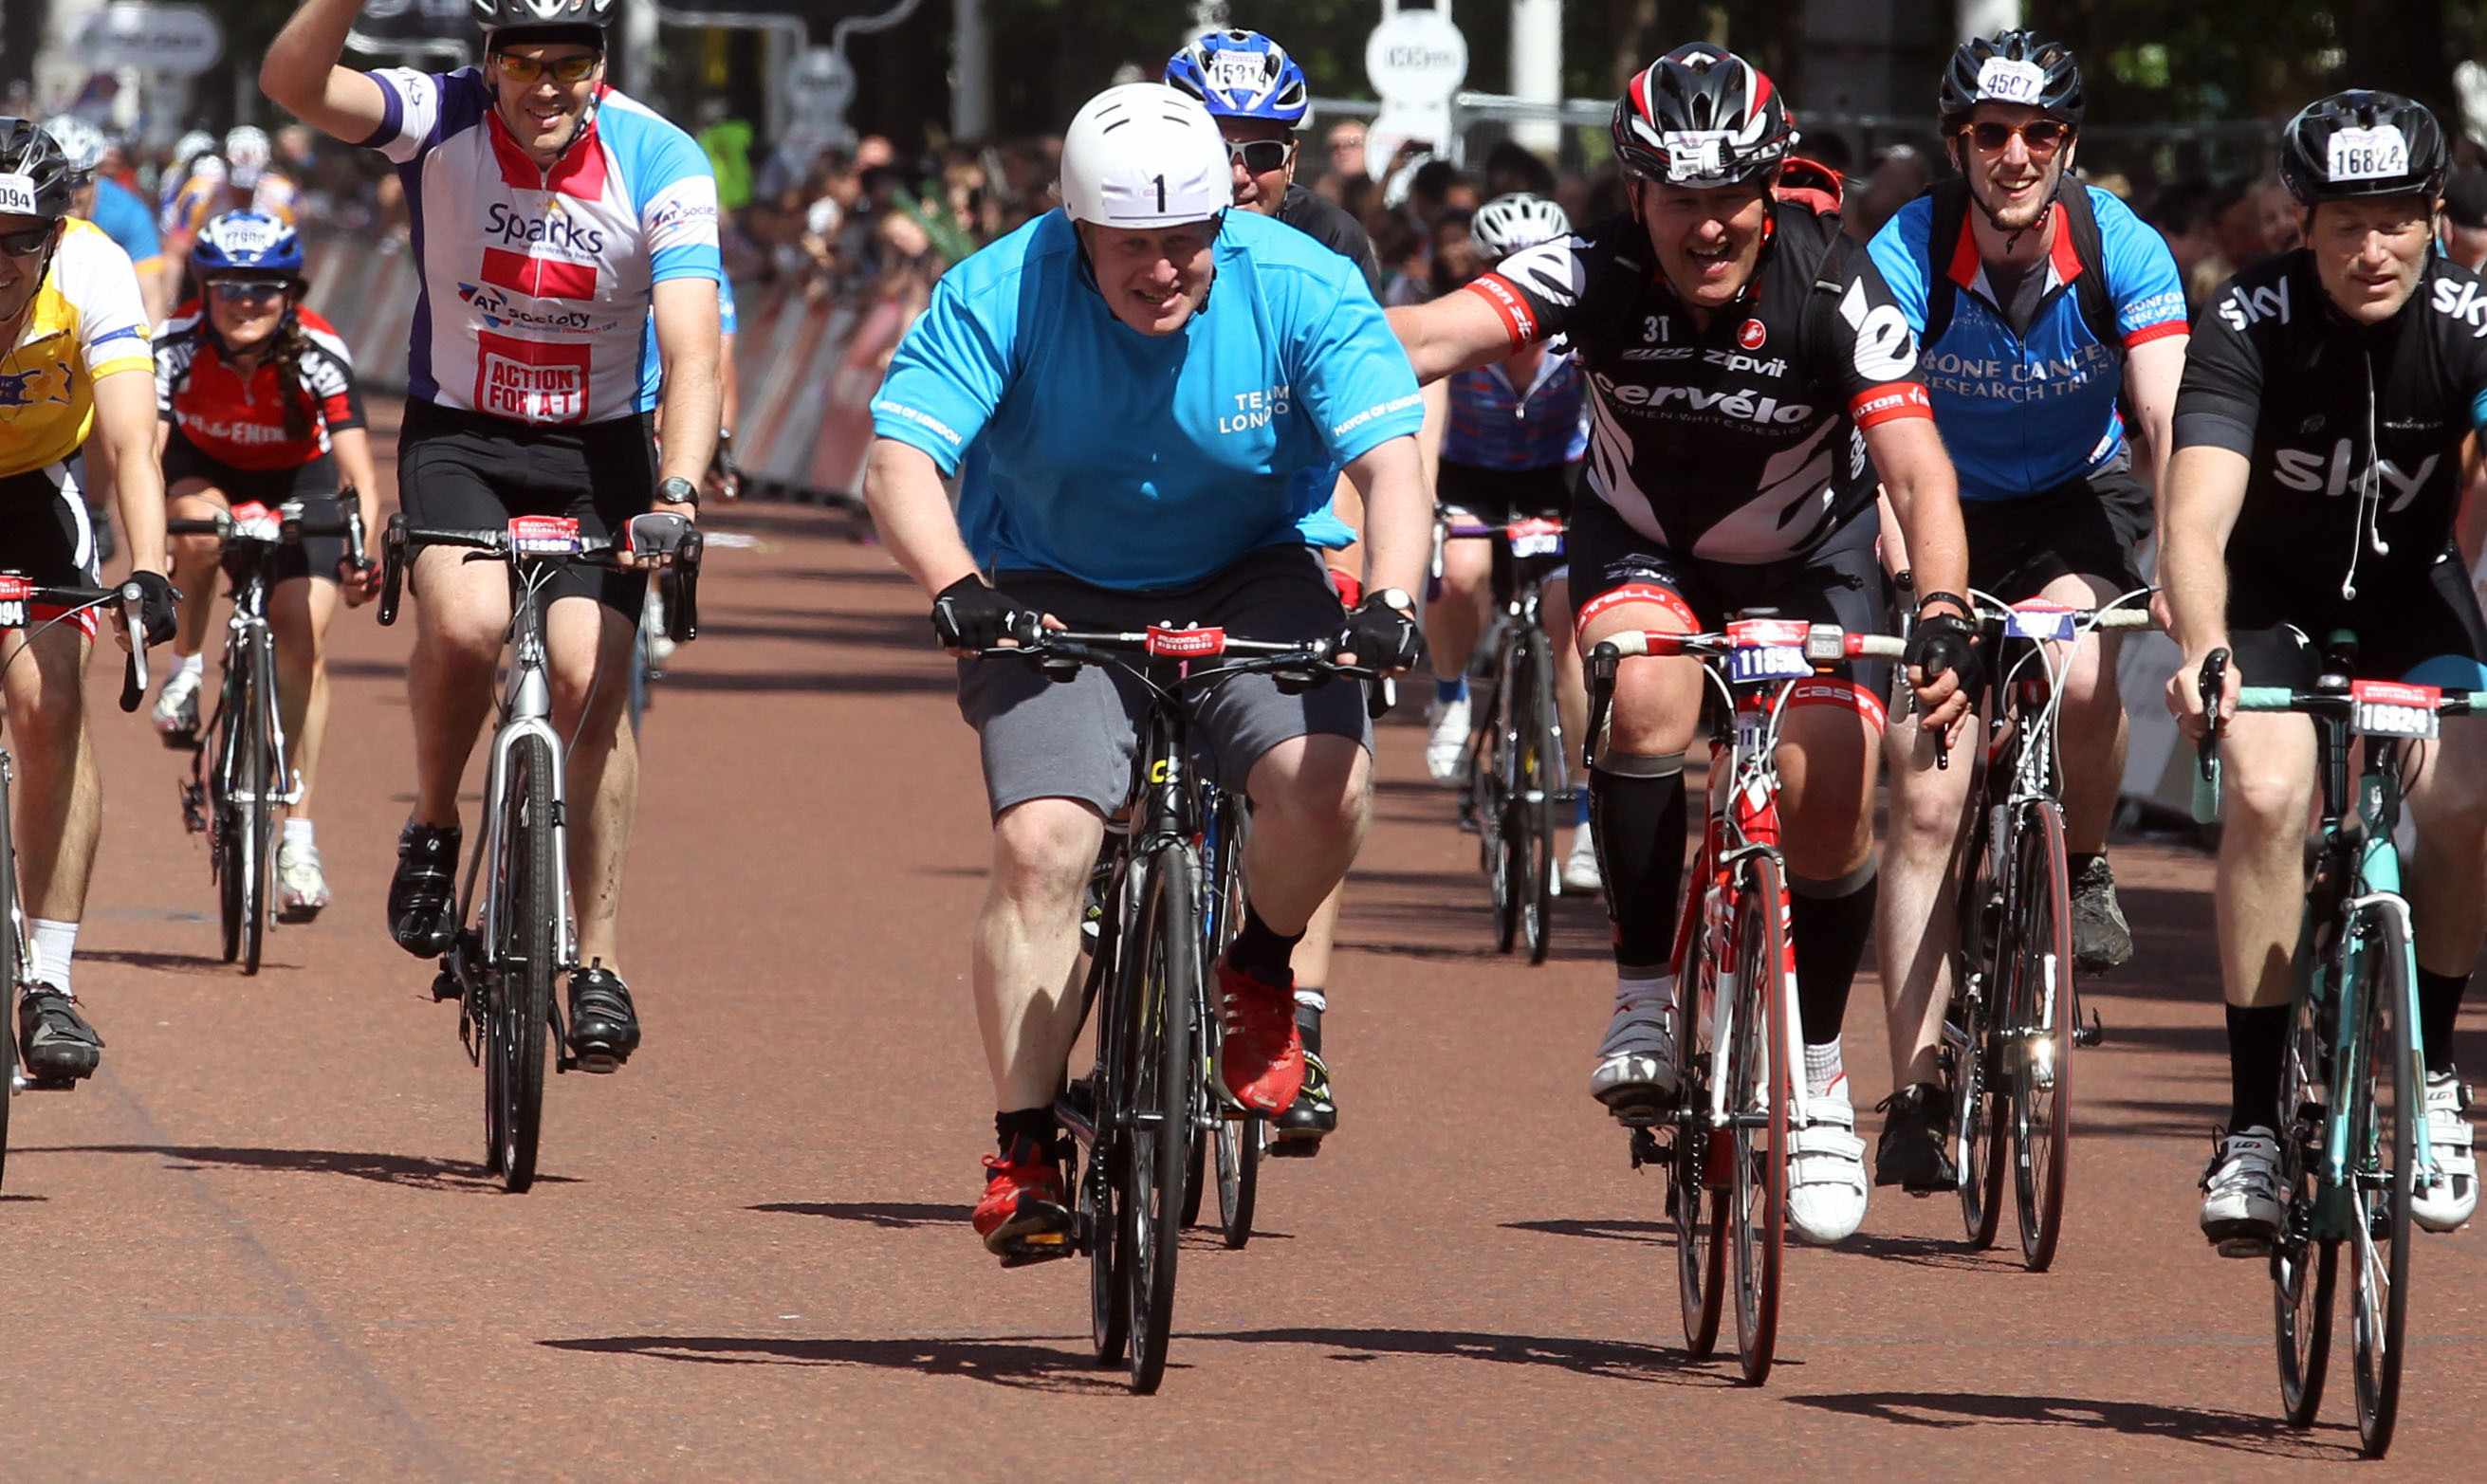 London mayor Boris Johnson was a high profile finisher of the Prudential RideLondon-Surrey 100